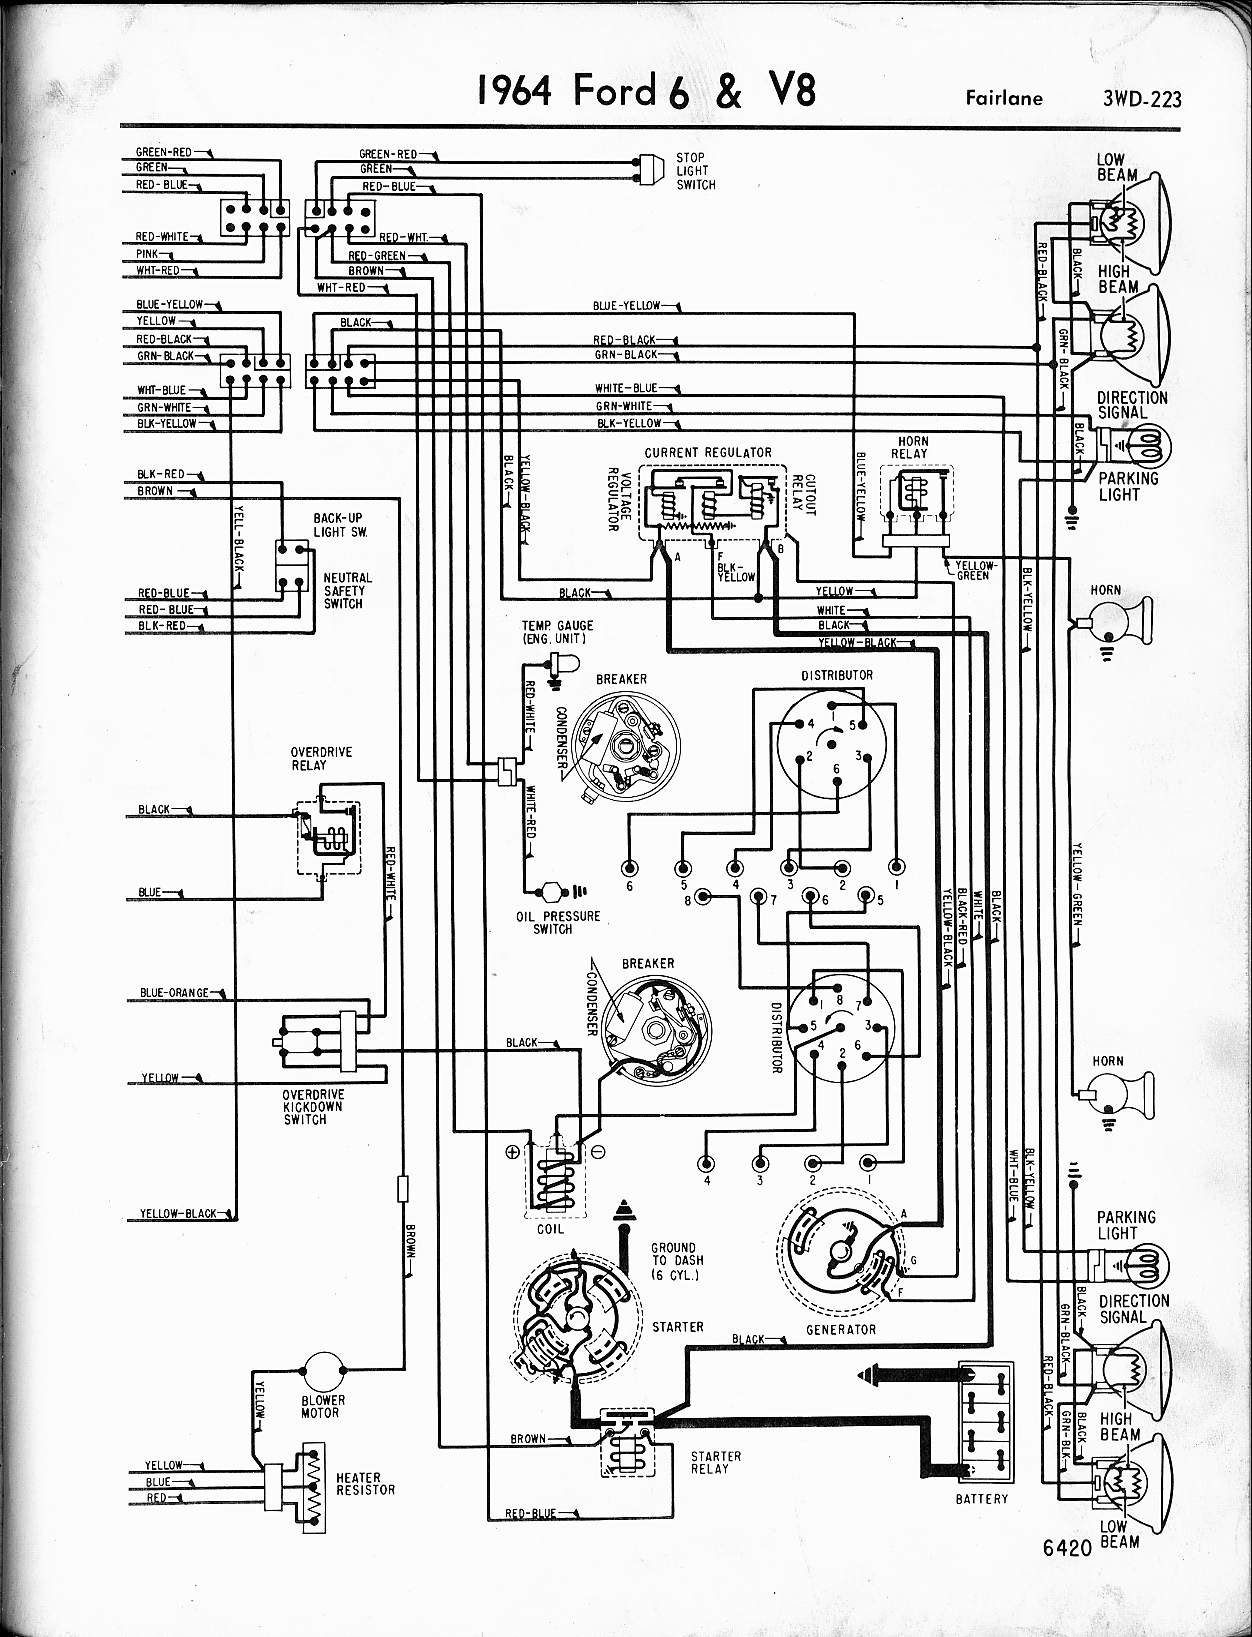 4133 Wiring Diagram For A 1964 Ford 2000 Tractor Wiring Resources